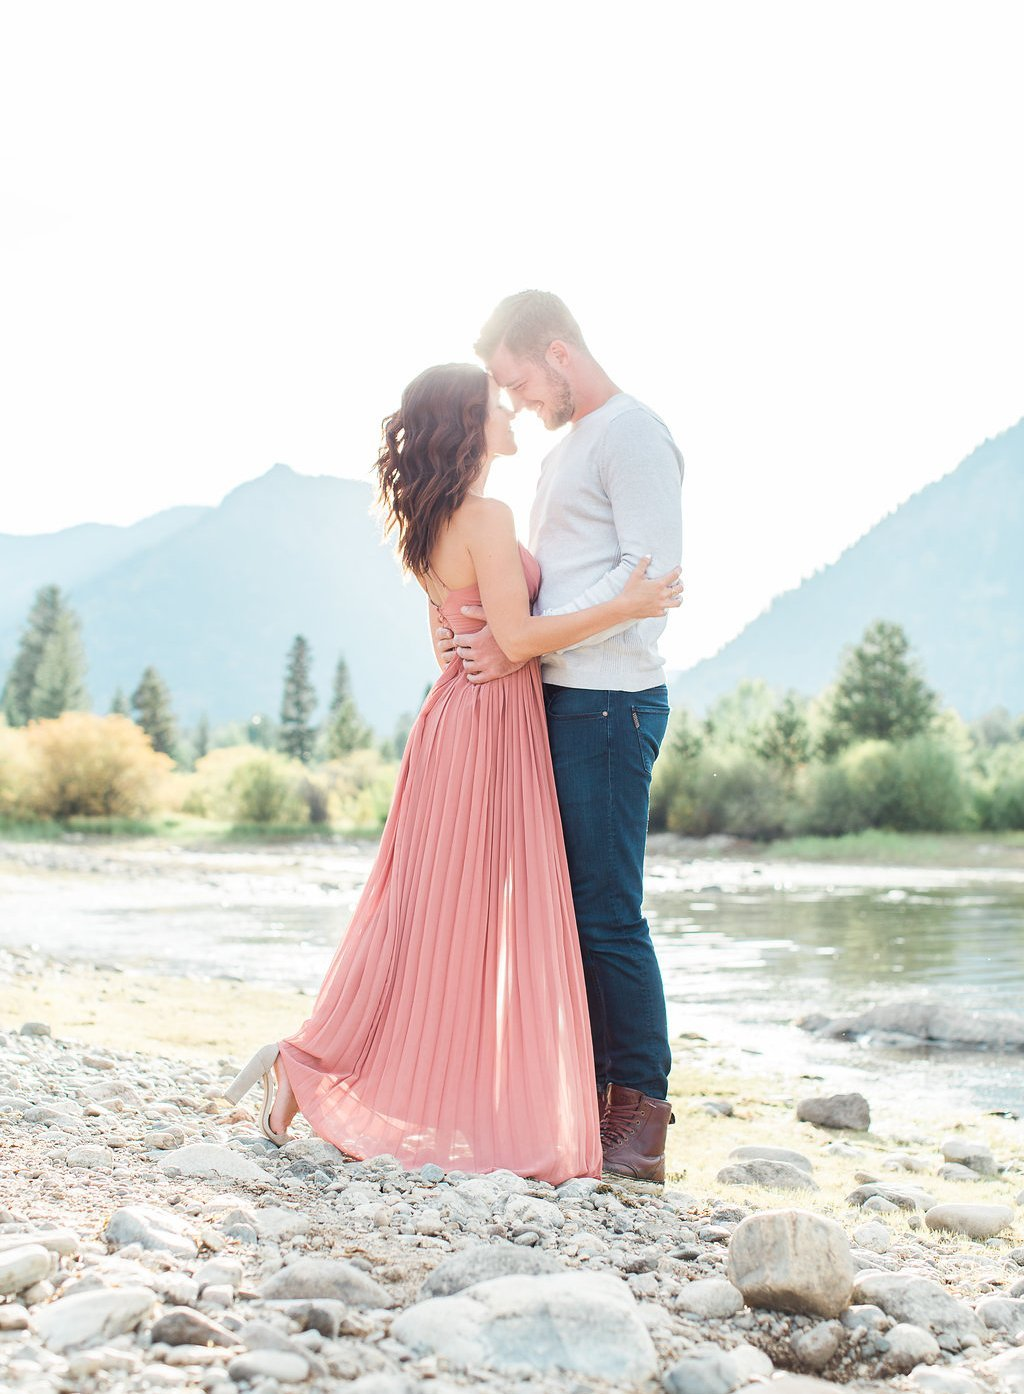 Lake Dillon, Colorado Engagement Photography bride and groom near the lake embracing